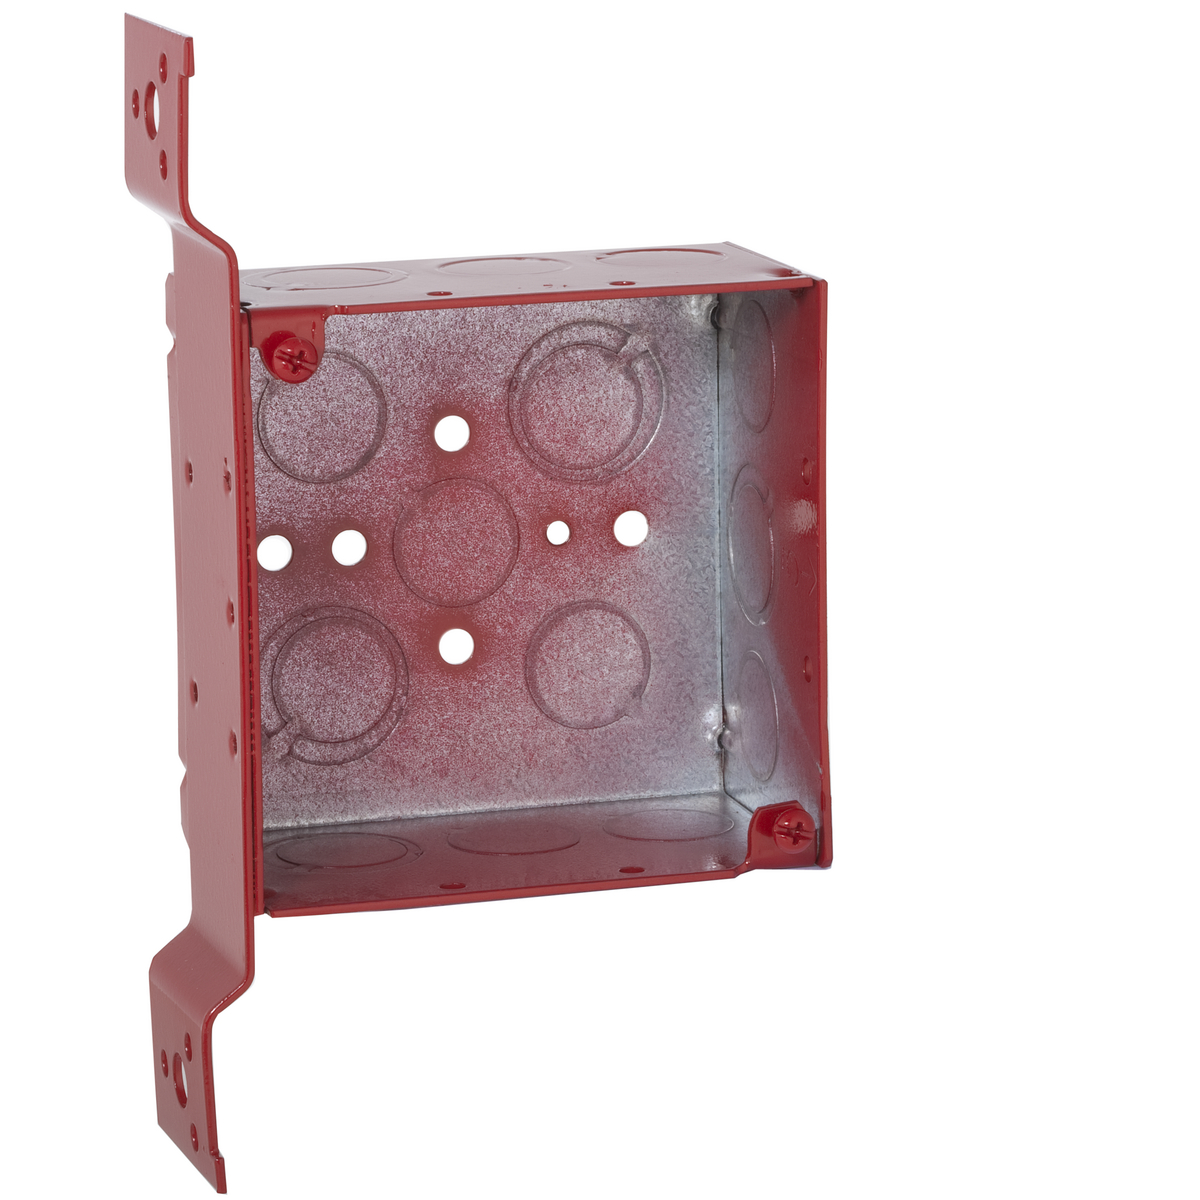 4SQ BOX 2-1/8DP FM-BKT 1/2-3/4 TKO - RED